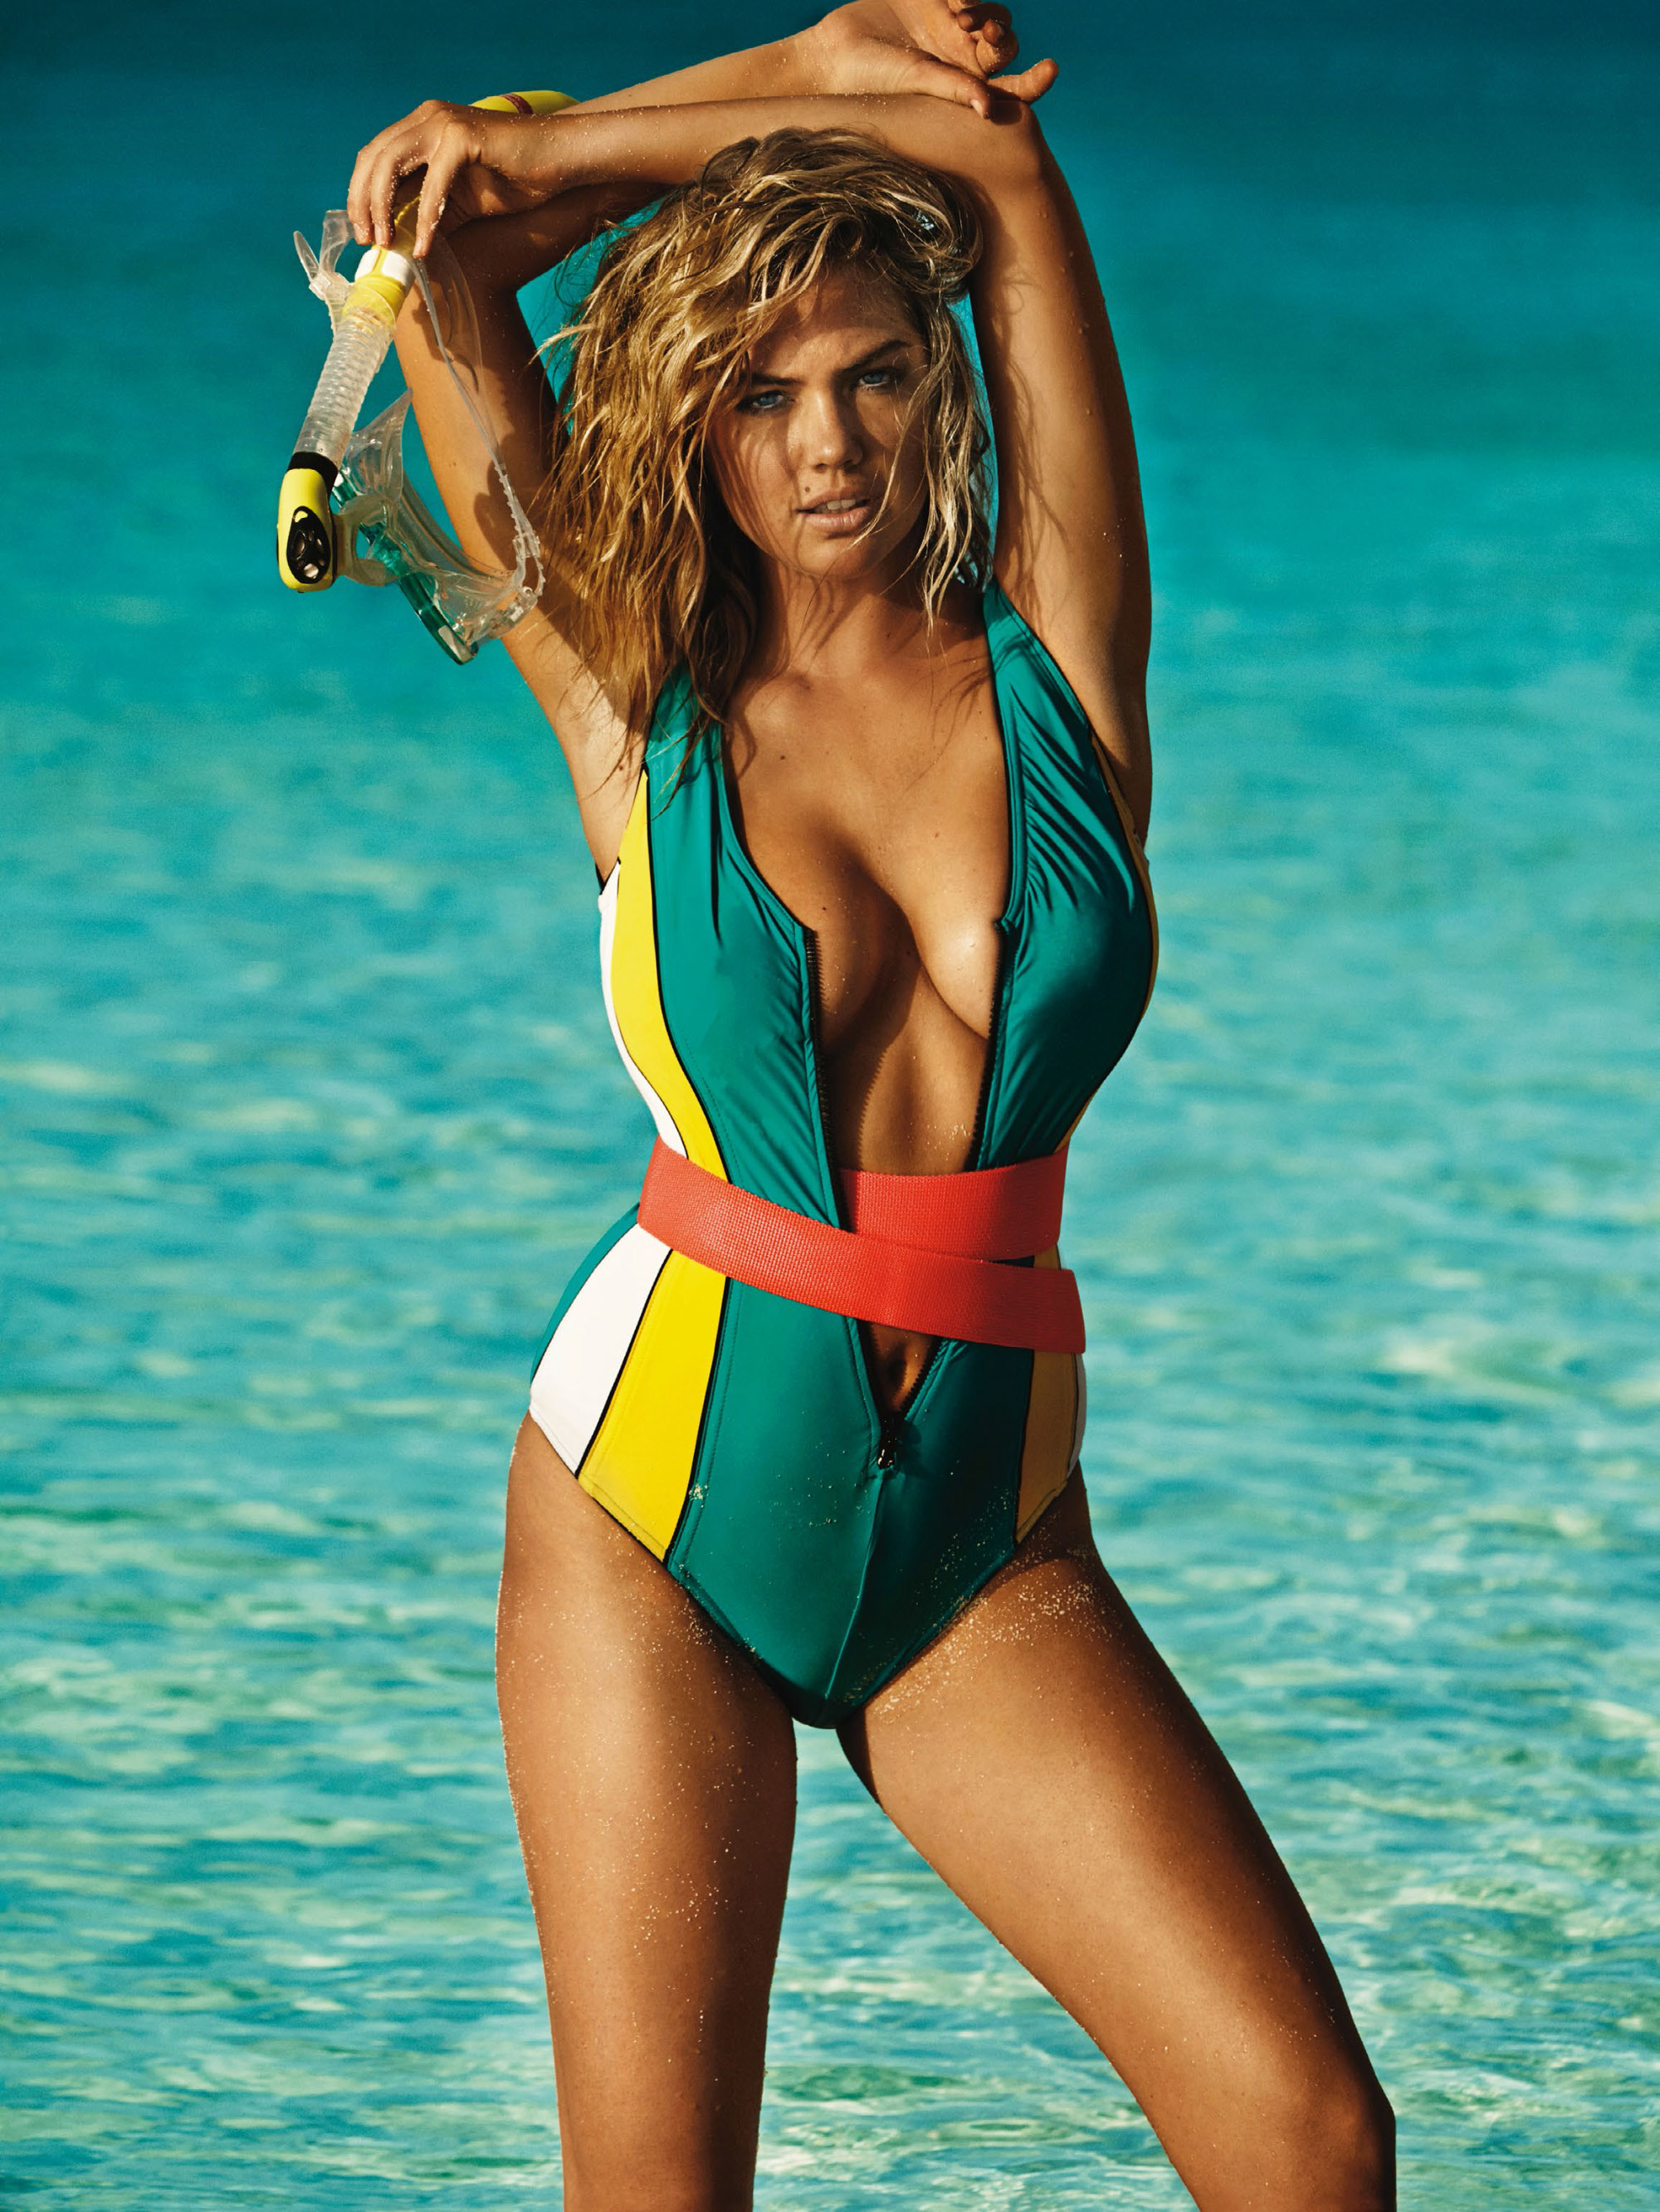 kate-upton-by-mario-testino-for-uk-vogue-june-2014-5